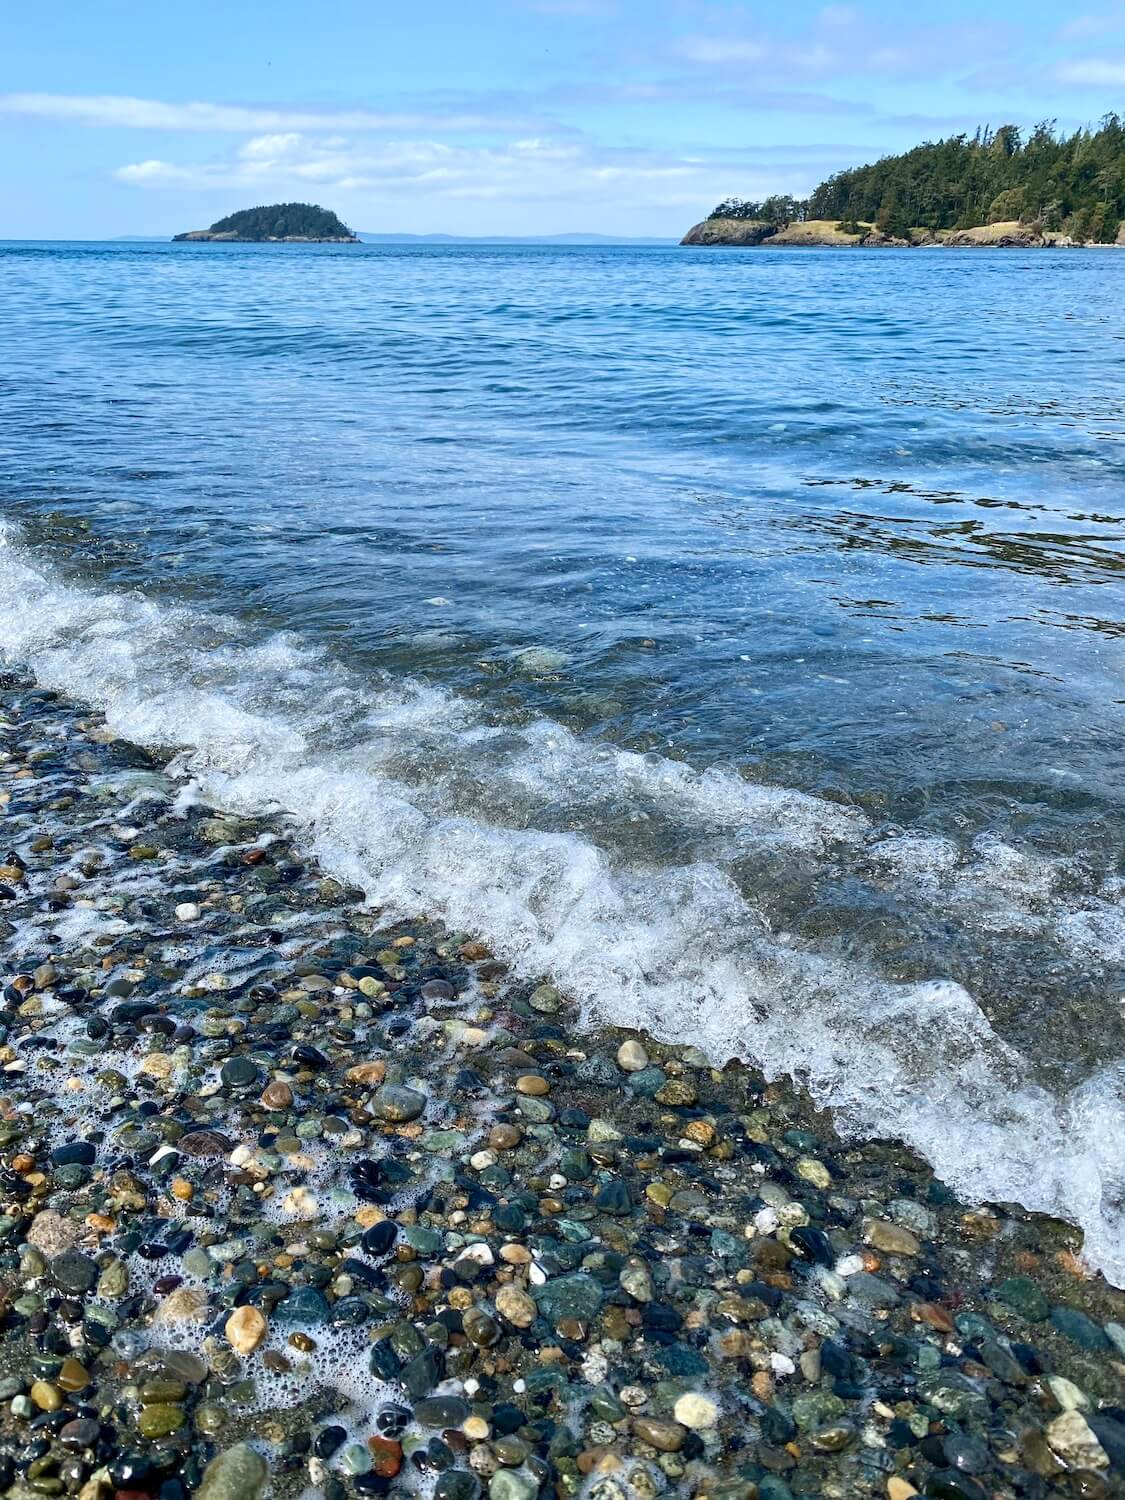 Pacific Northwest travel is all about the water. Here, foamy waves wash up on a pebble beach of the Salish Sea, while islands pop up on the horizon.